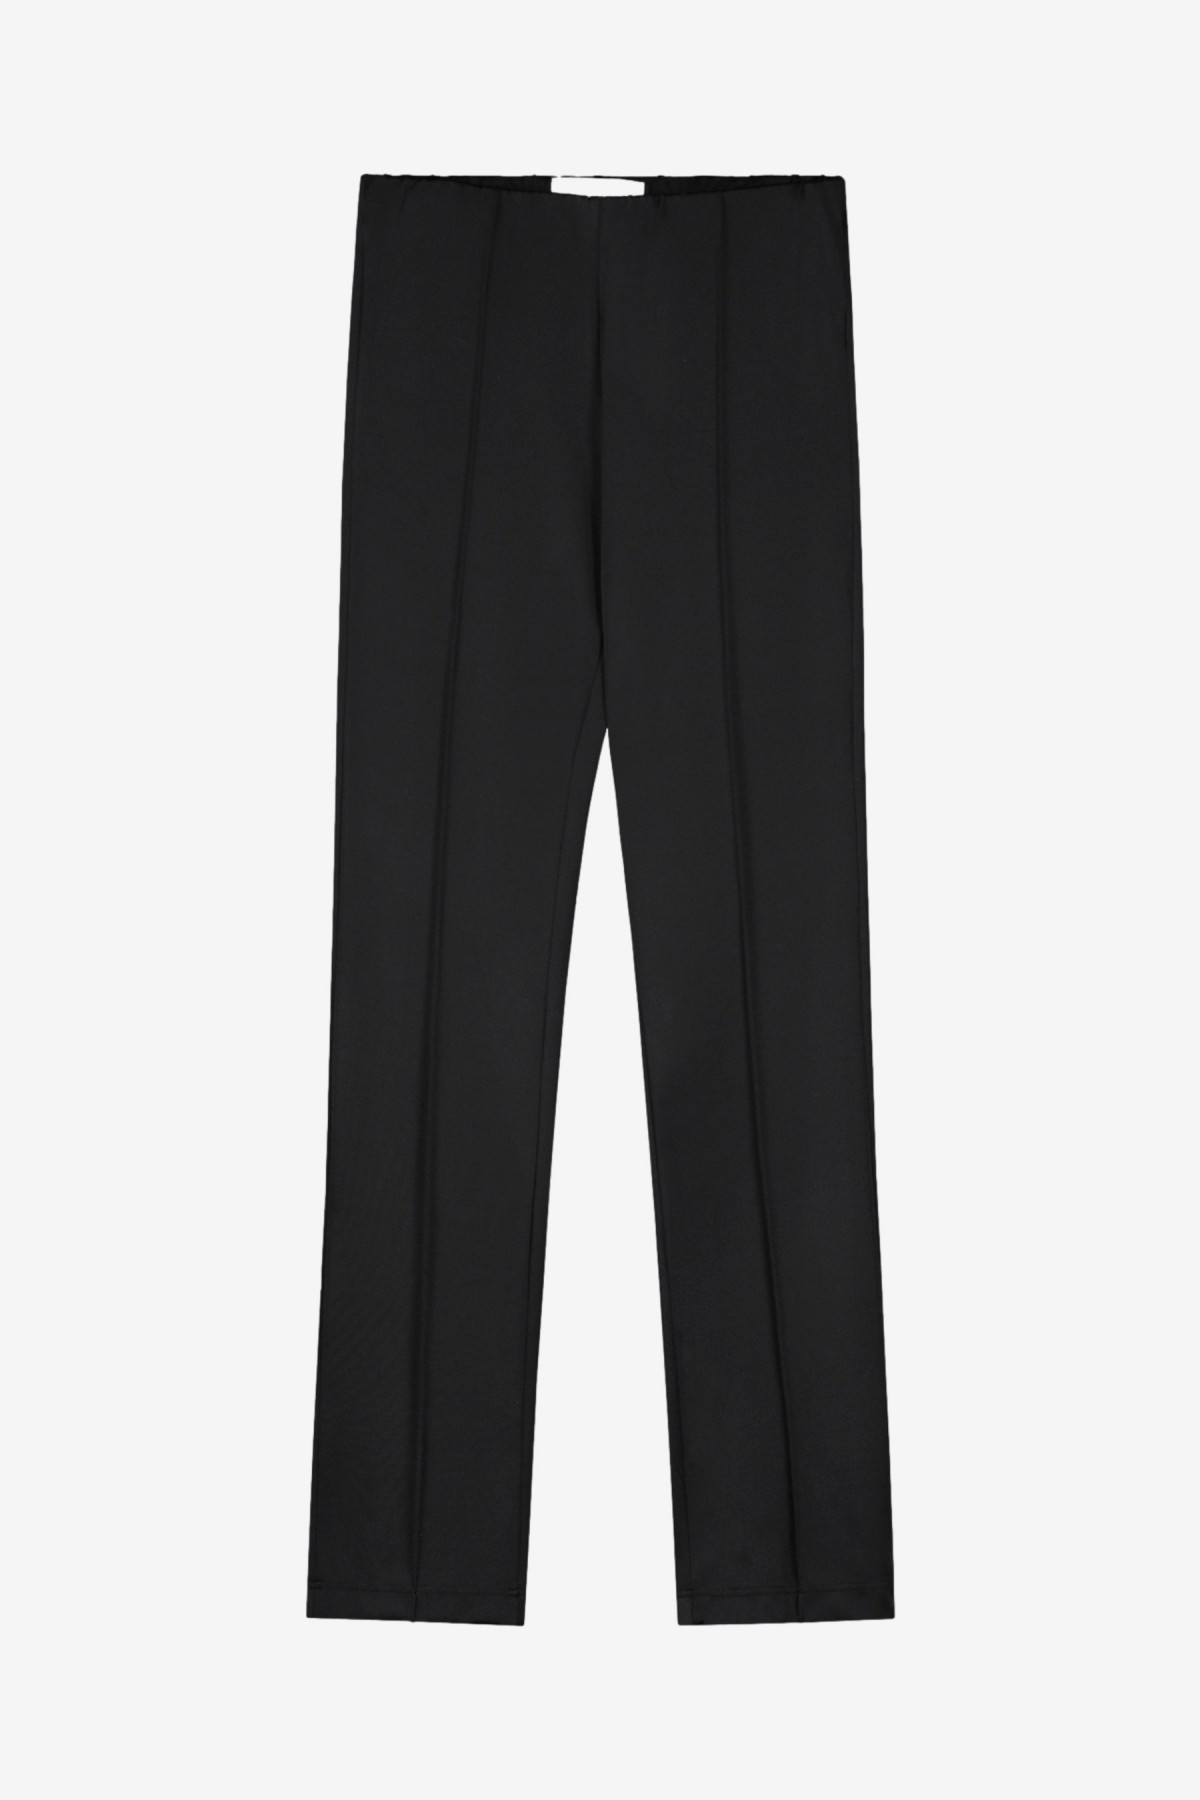 The Five Studio The Everyday Trousers in Black